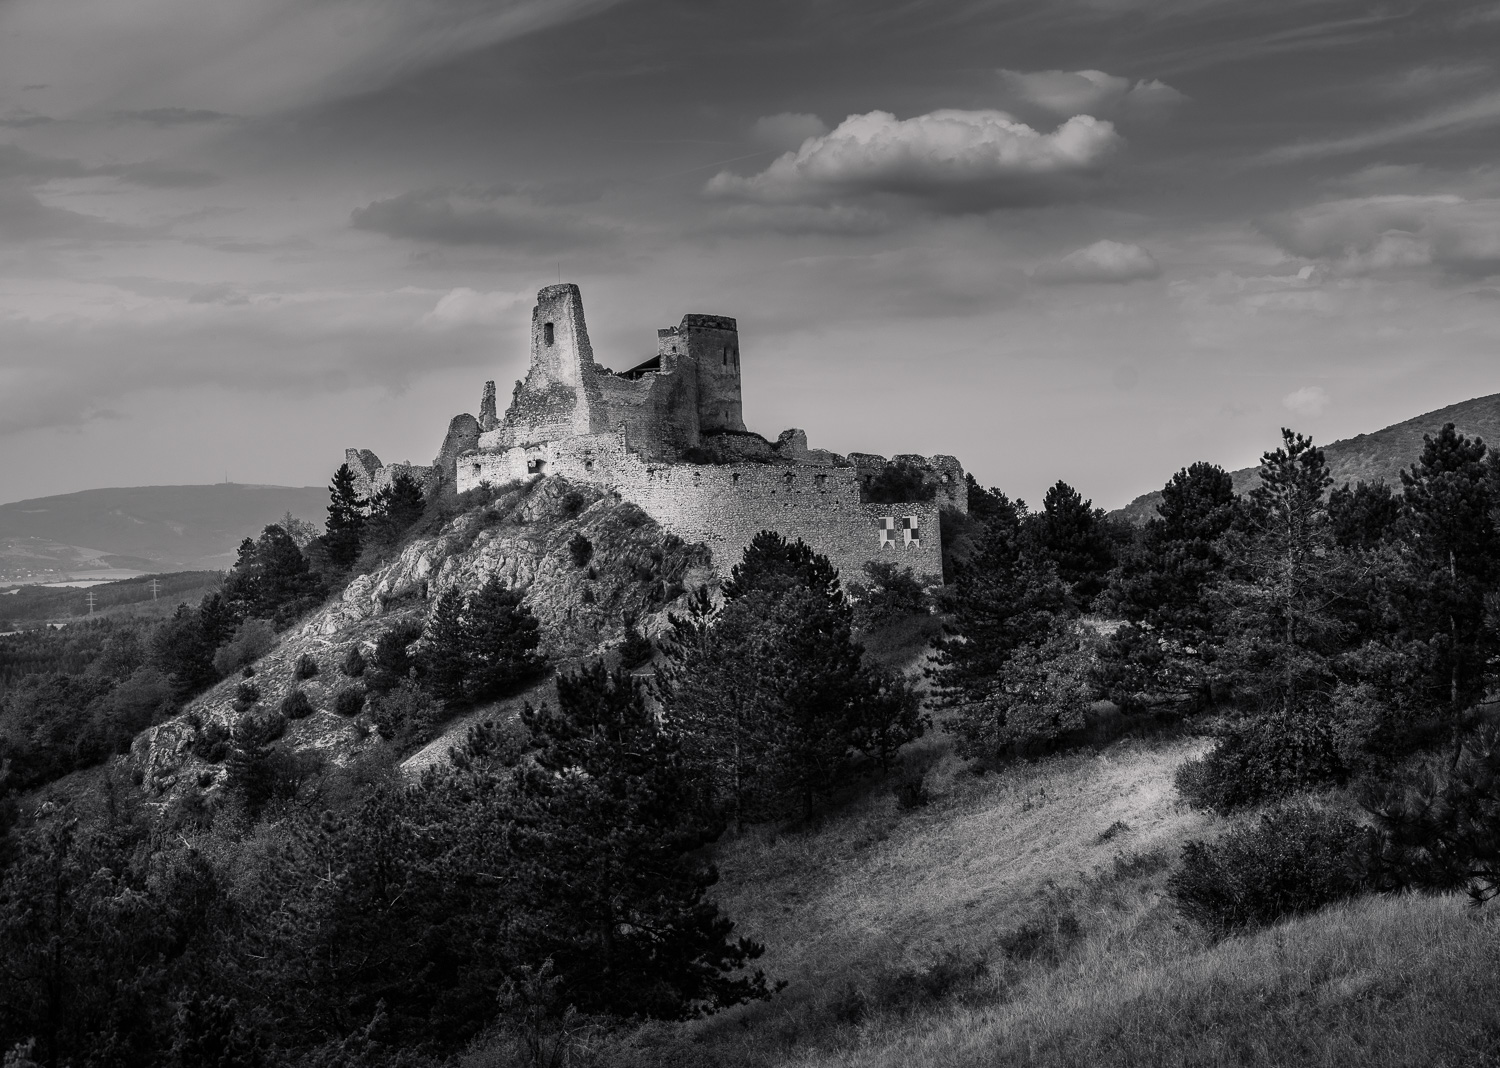 Čachtice Castle ruins. The home of countess Elisabeth Bathory.